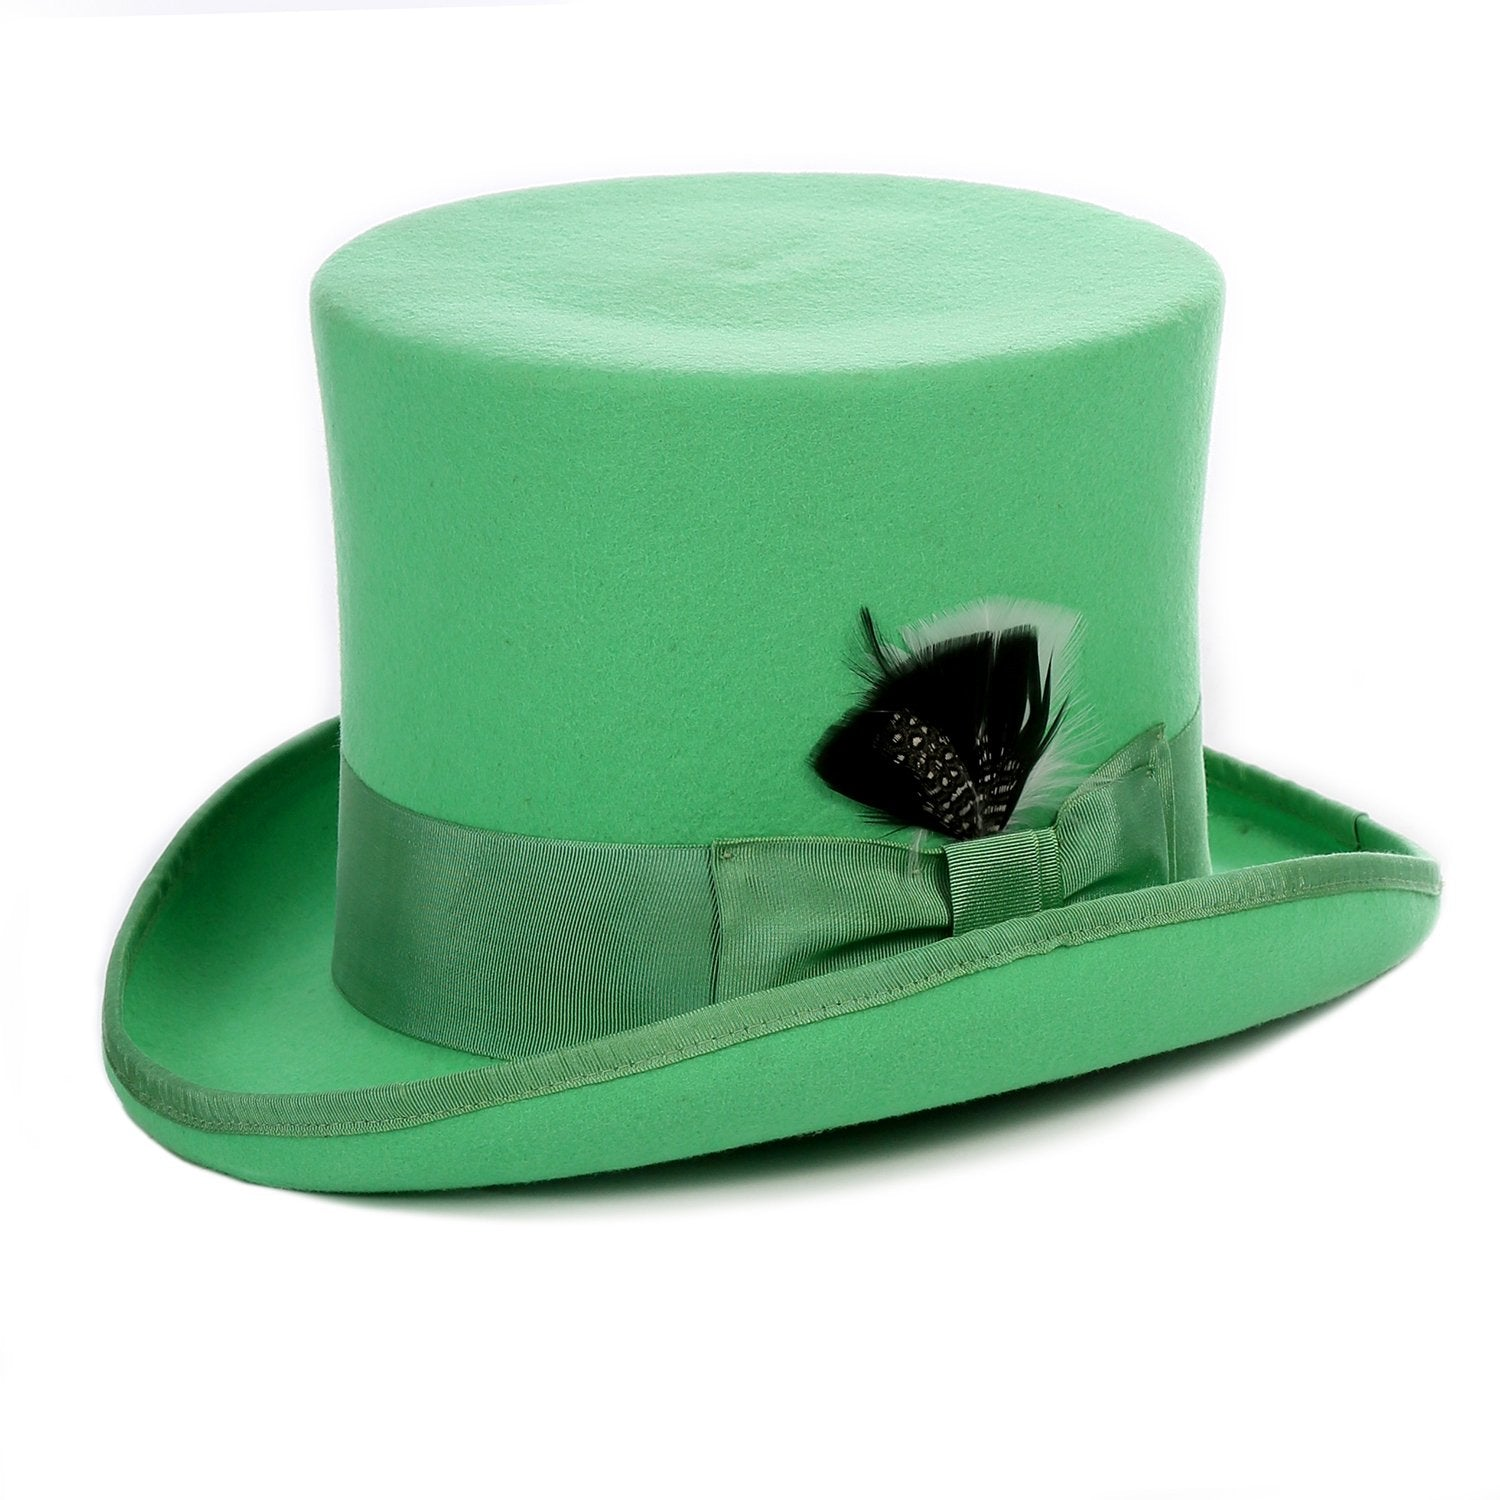 Premium Wool Green Top Hat - Giorgio's Menswear